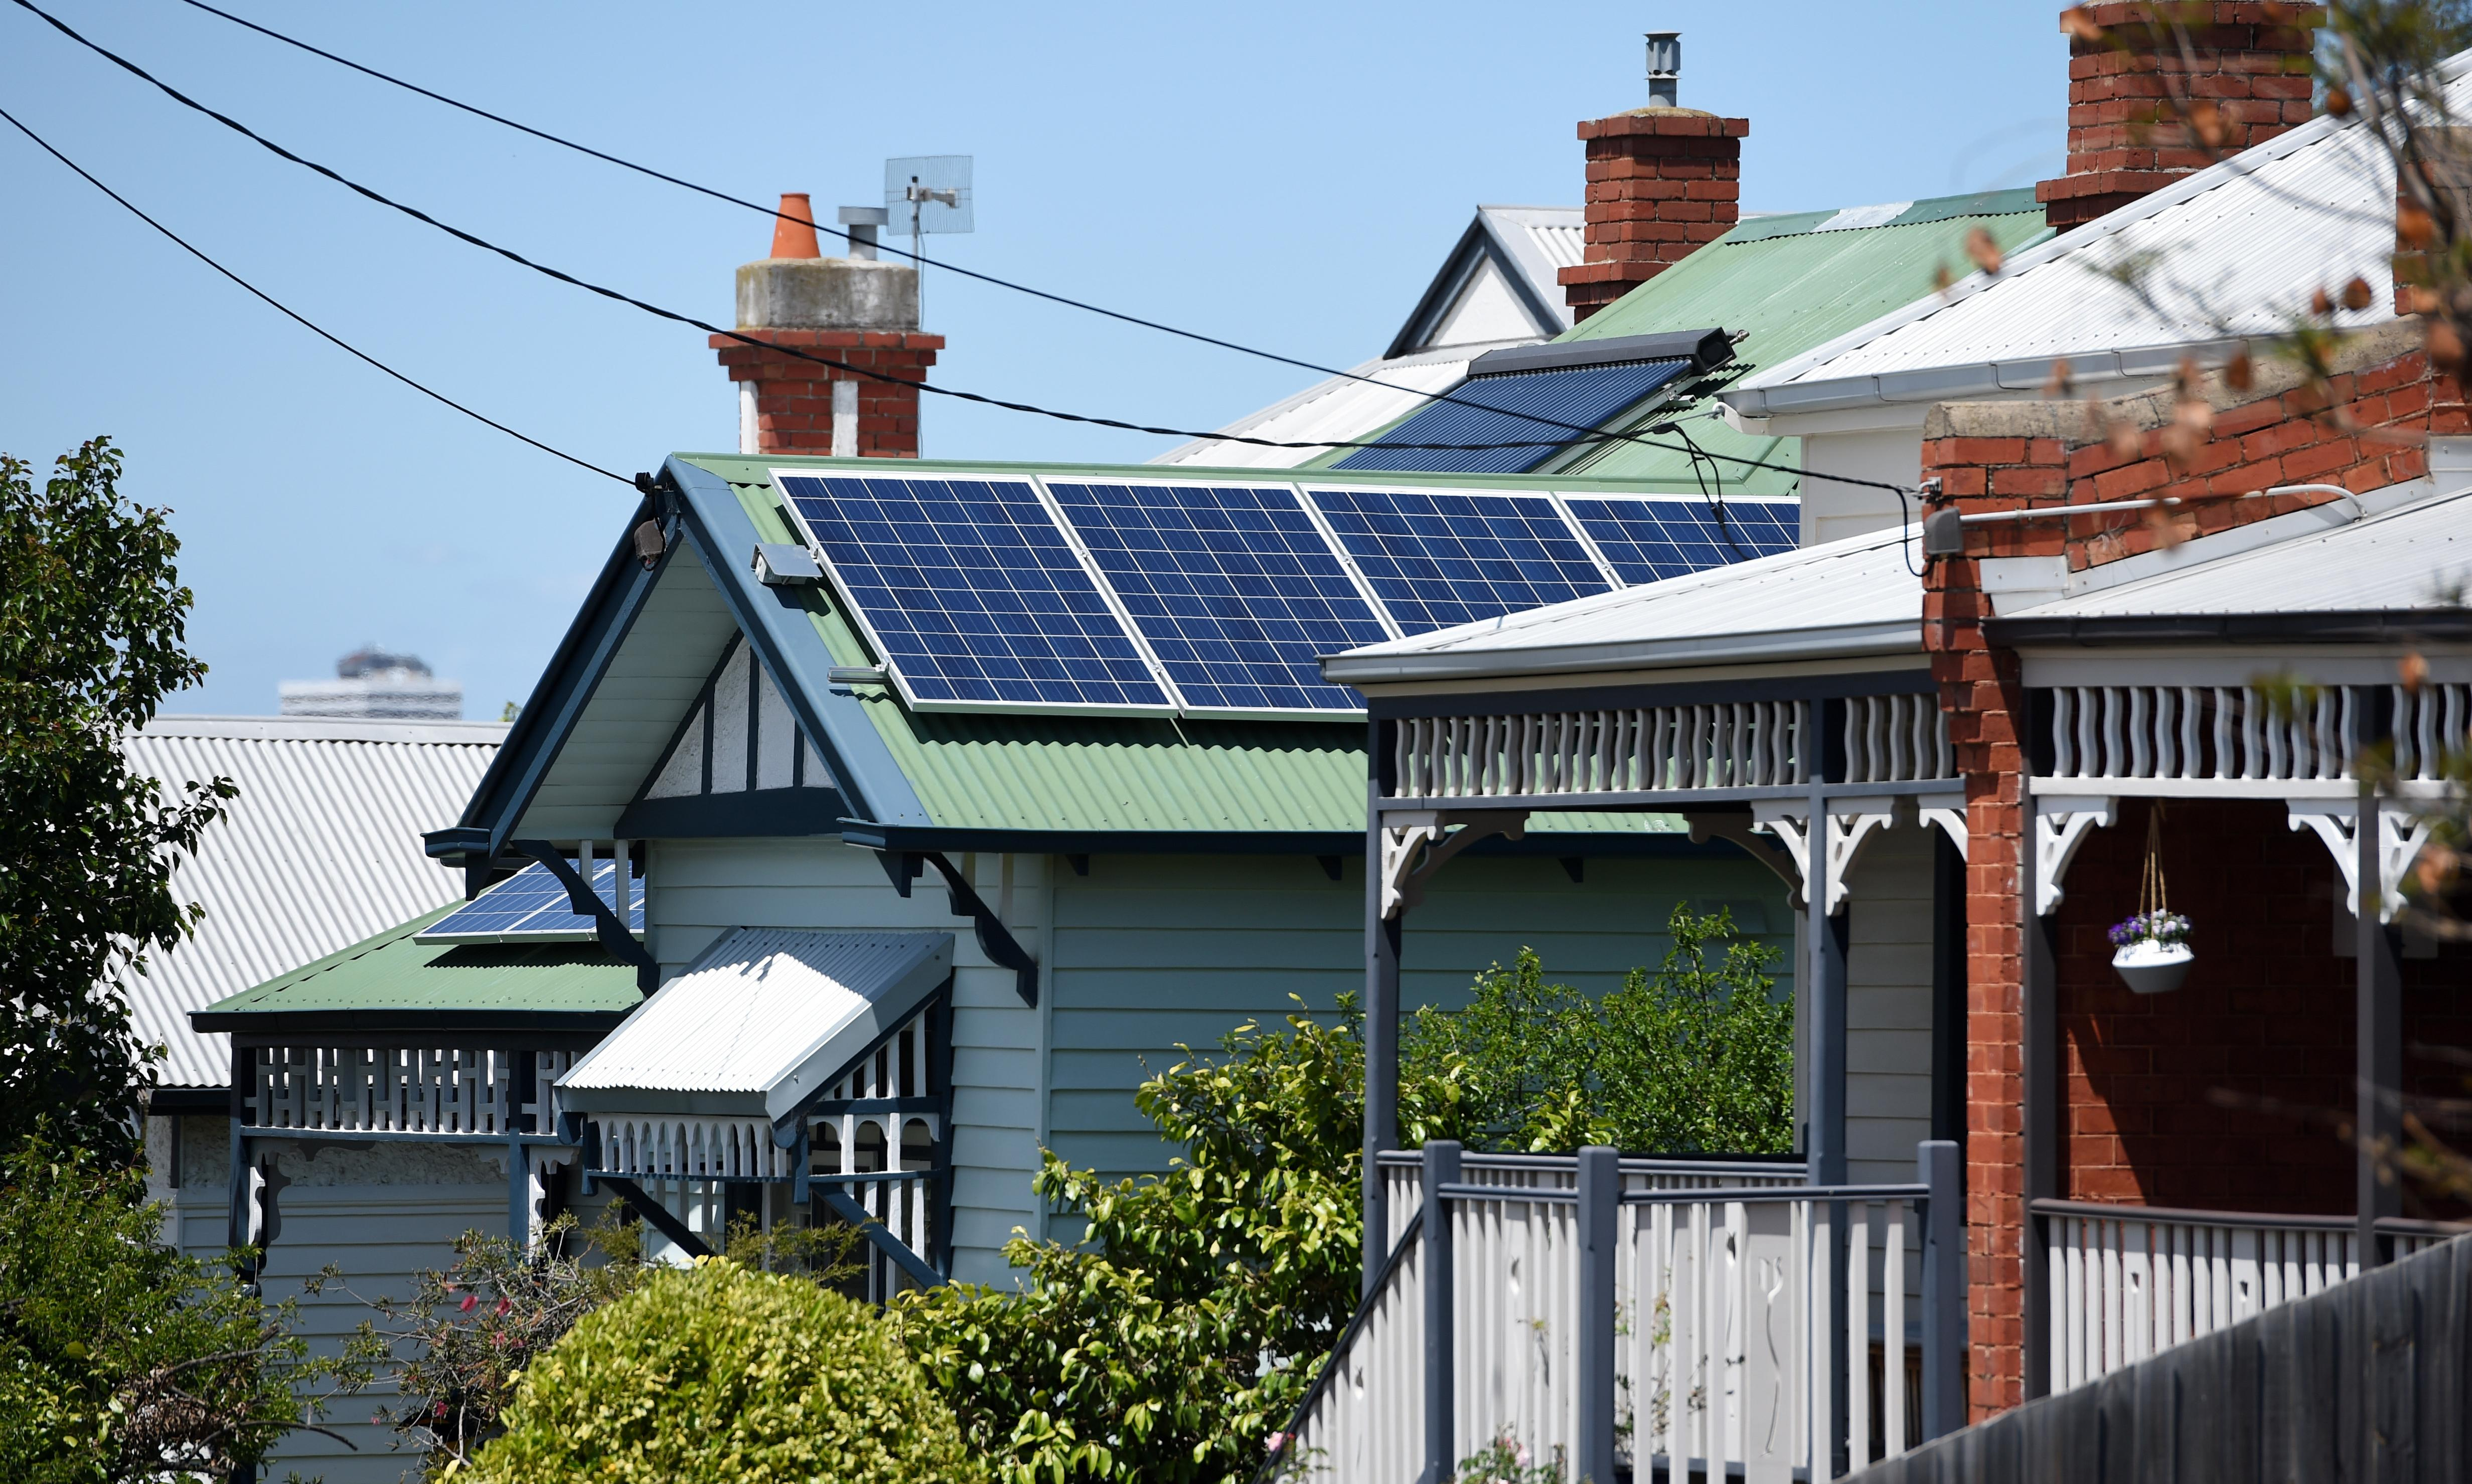 Housing market may bottom out over next year, Australian property experts say